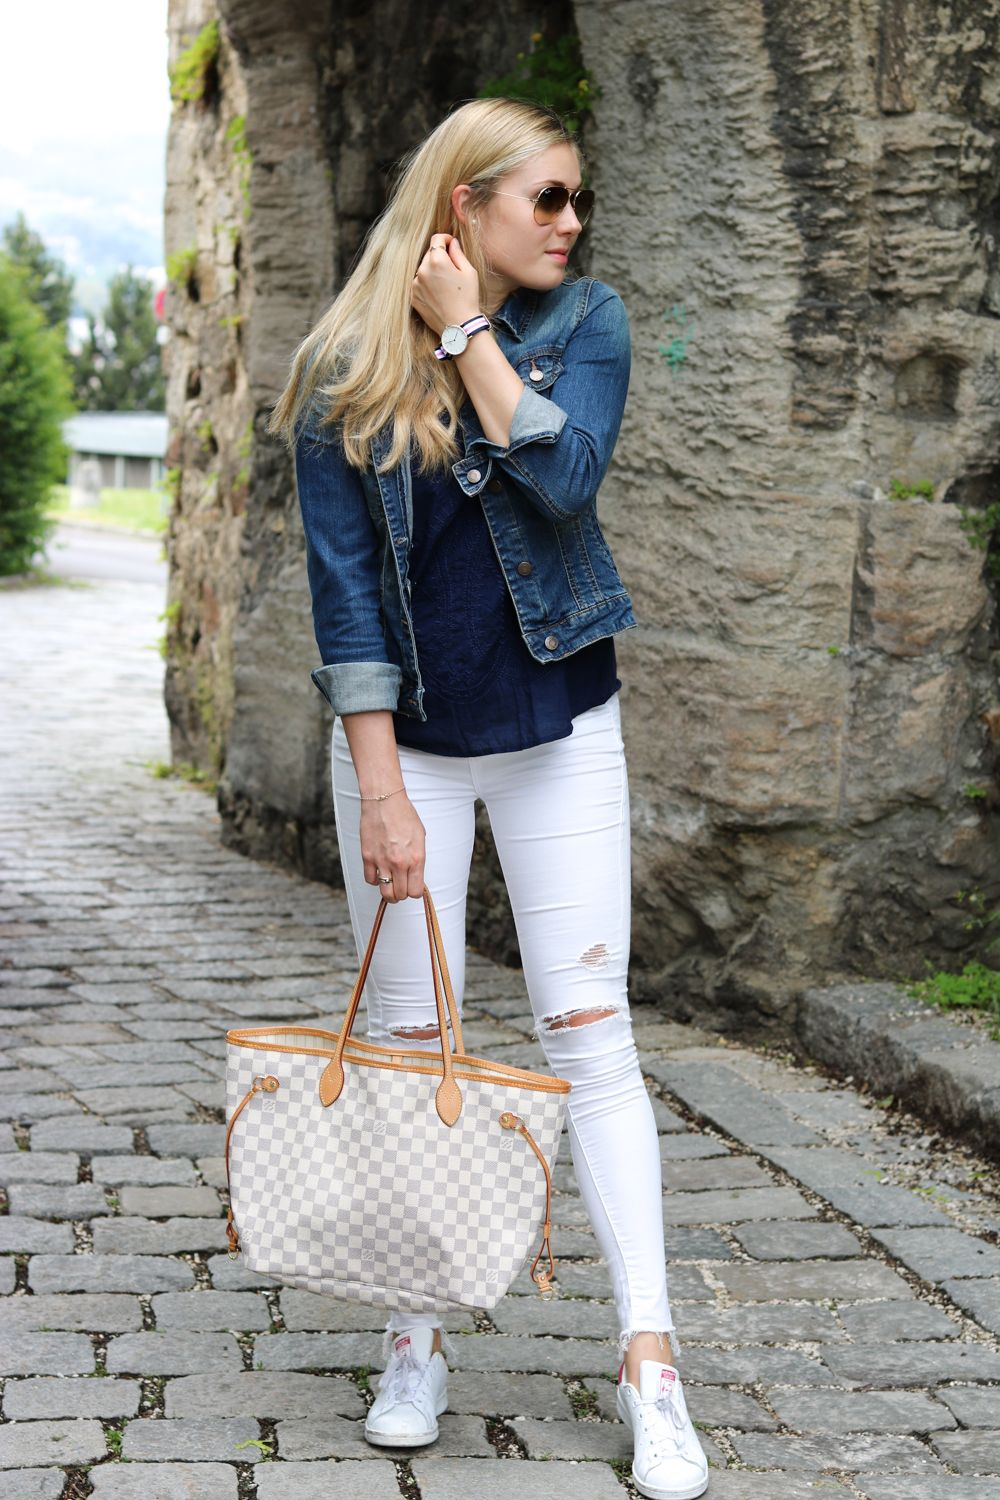 Outfit Schlossberg Crush My Dreams Outfits Louis Vuitton